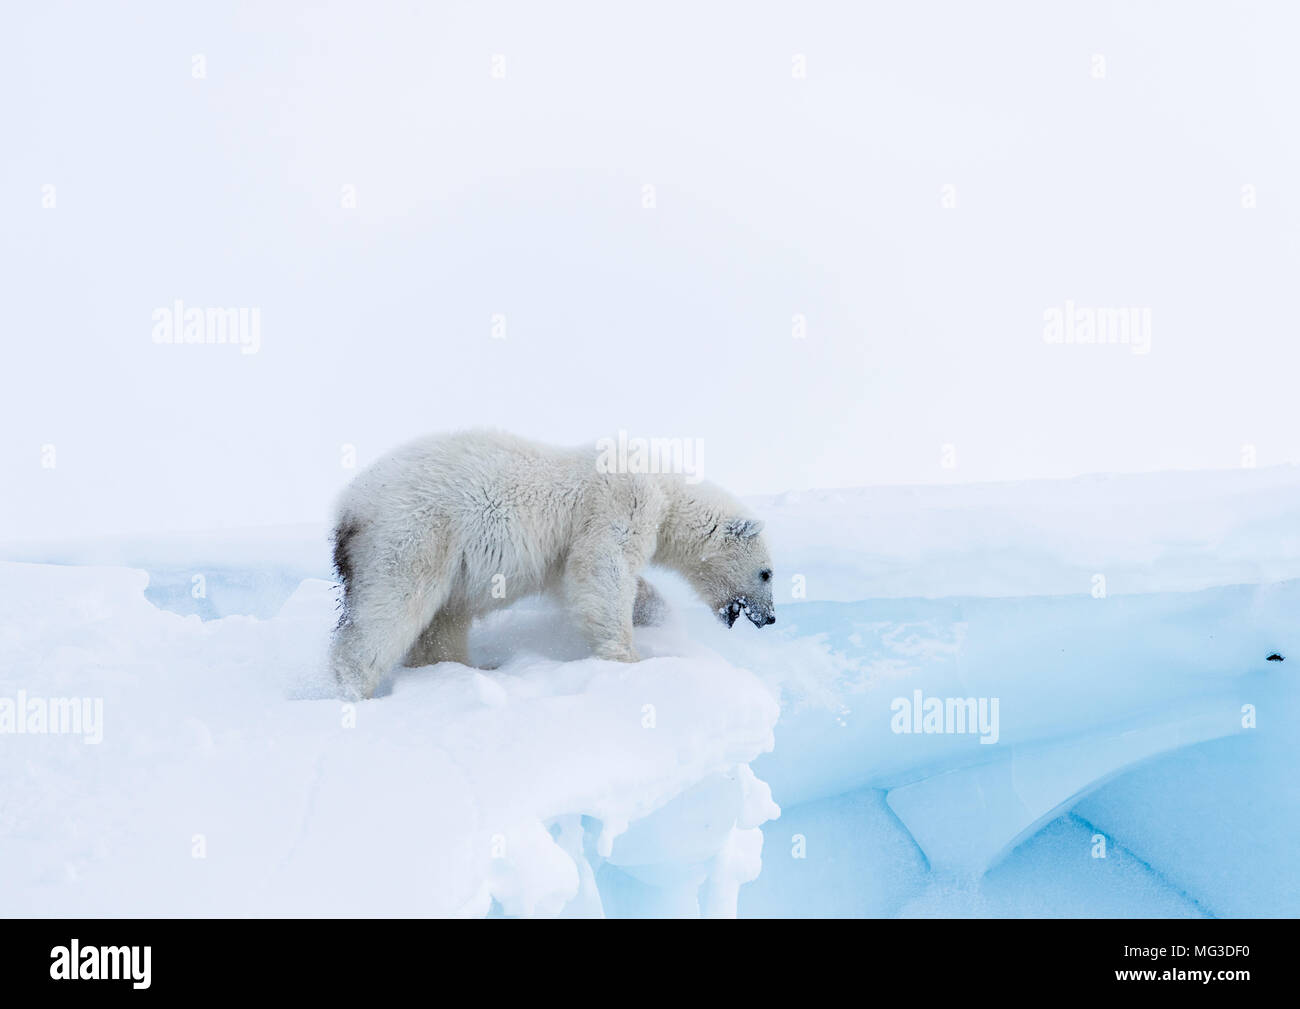 Year old juvenile polar bear cub on top of an iceberg.  Baffin, Arctic Canada - Stock Image